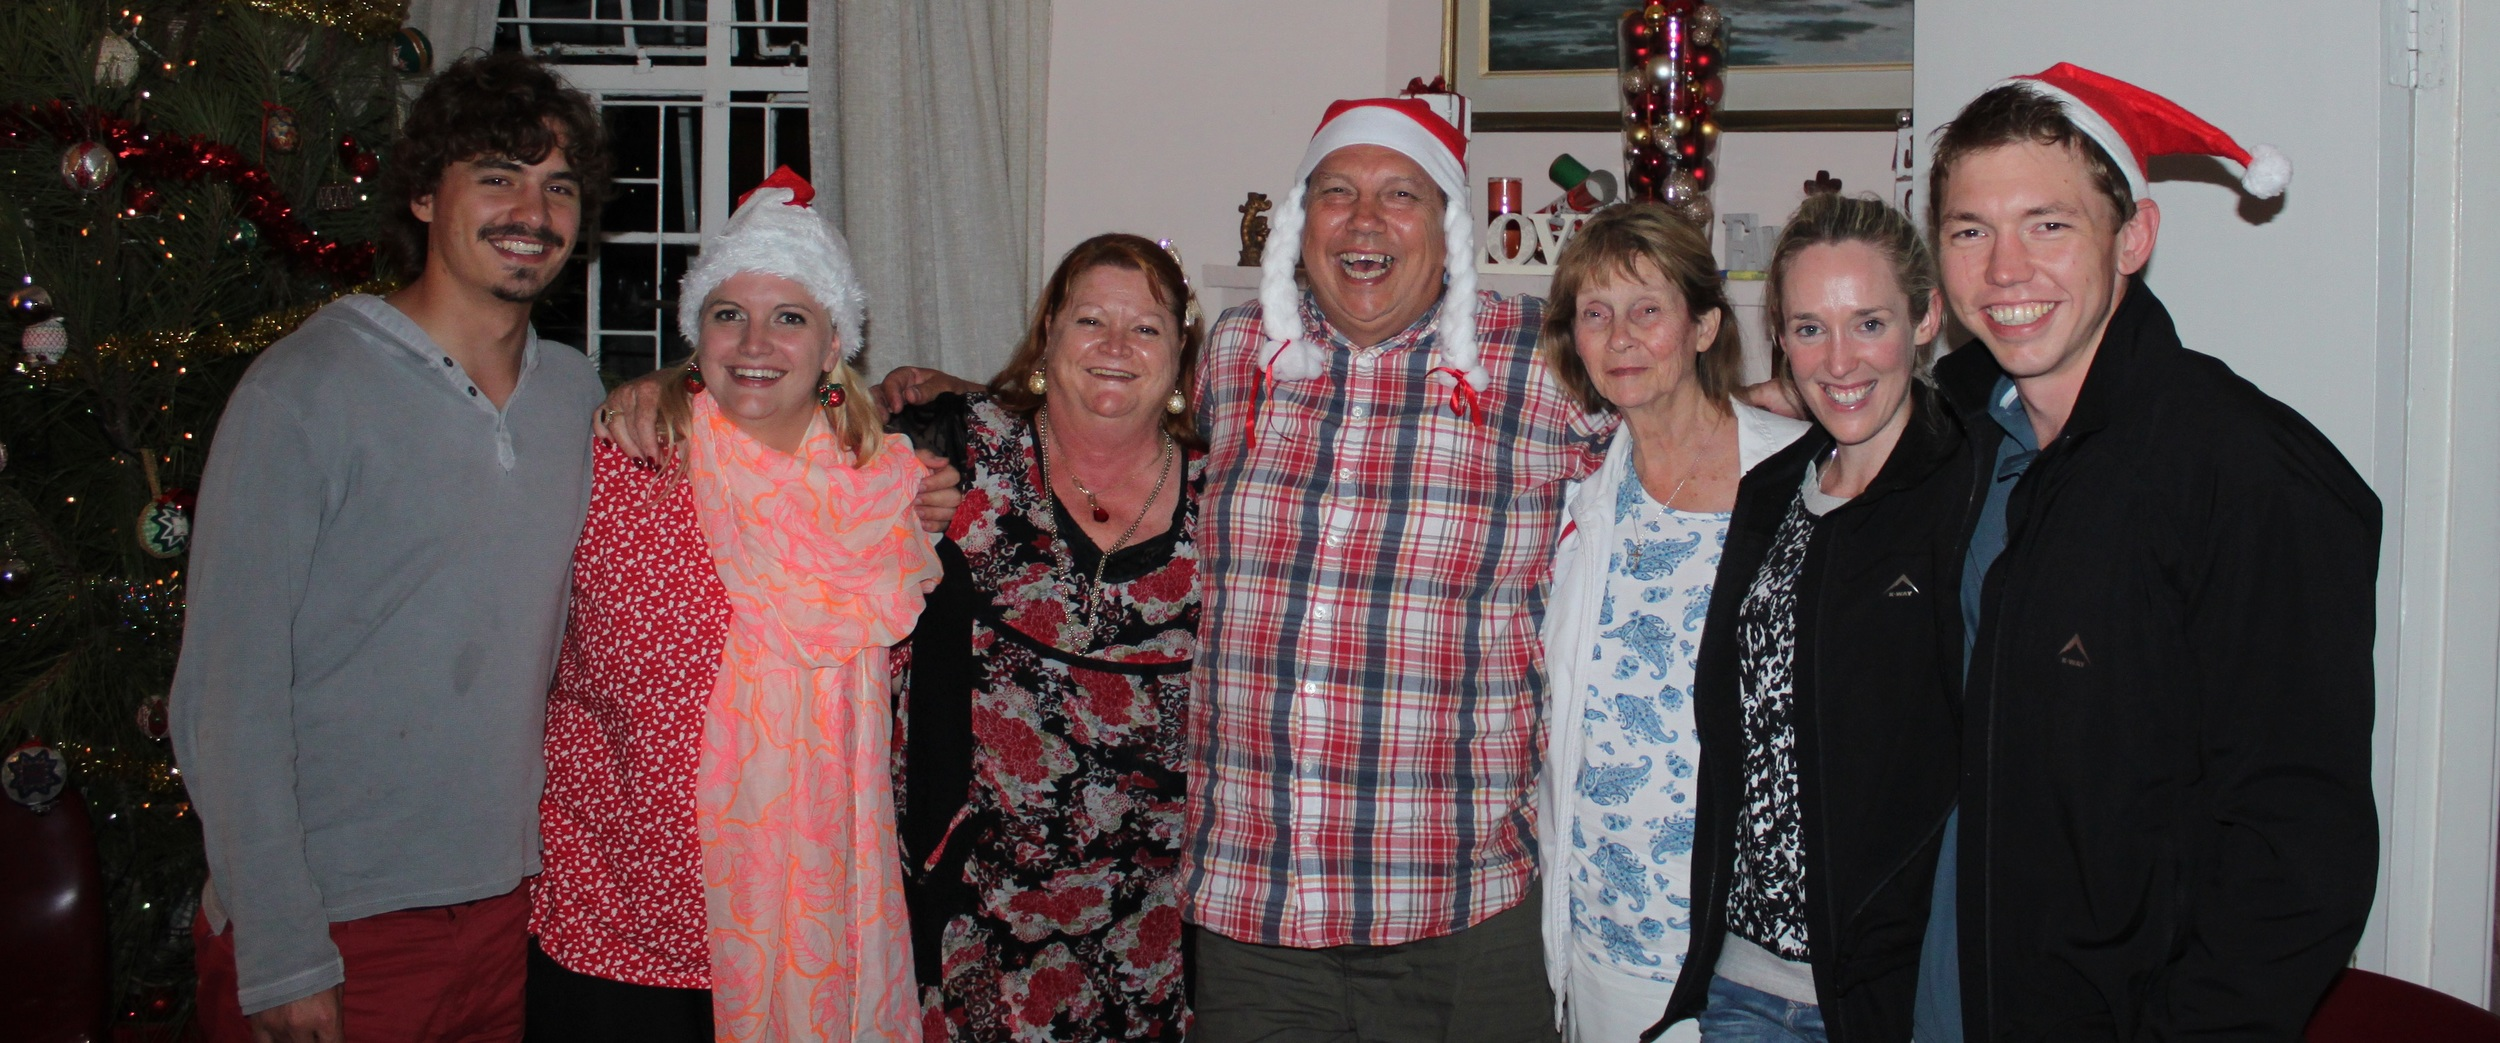 The Hodgson Family / Knysna, South Africa